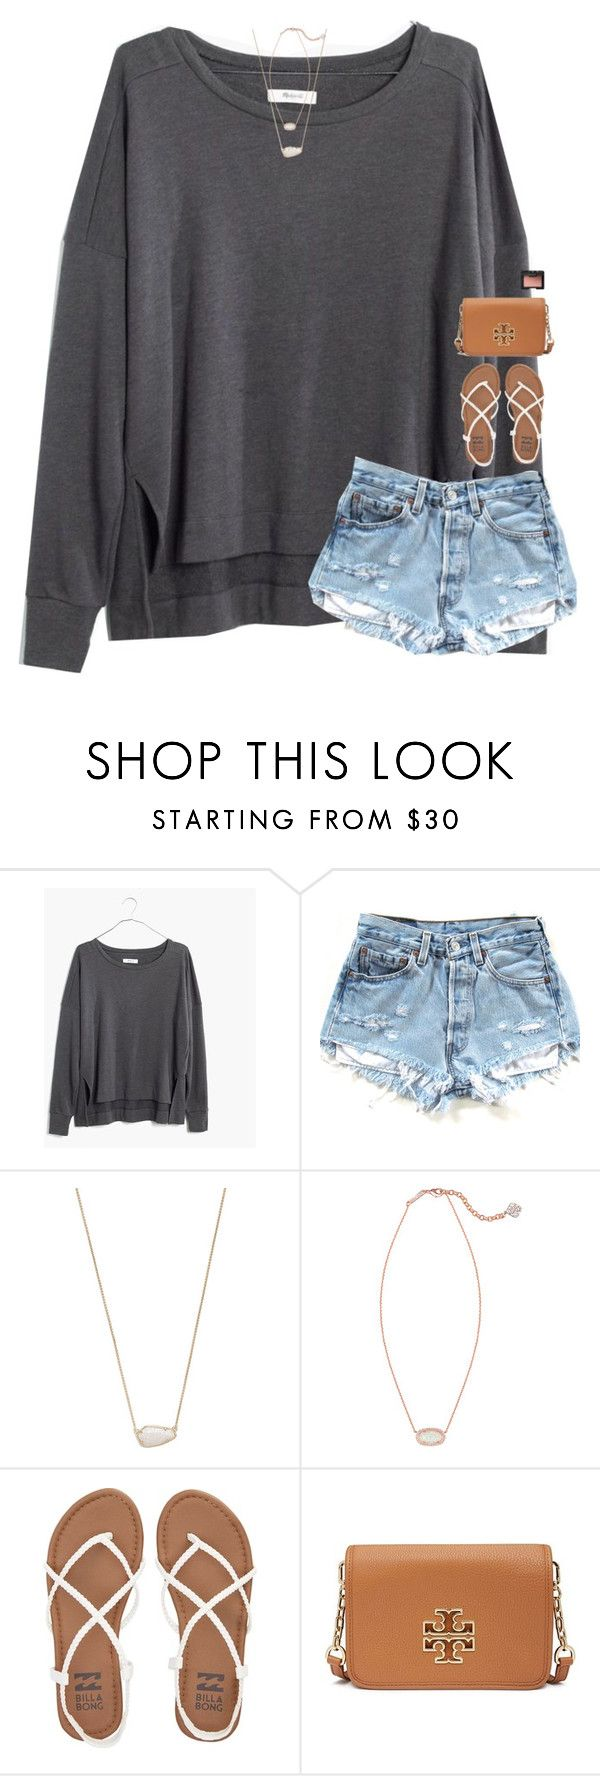 """""""do any of y'all play mineplex?"""" by classynsouthern ❤ liked on Polyvore featuring Madewell, Kendra Scott, Billabong, Tory Burch and NARS Cosmetics"""